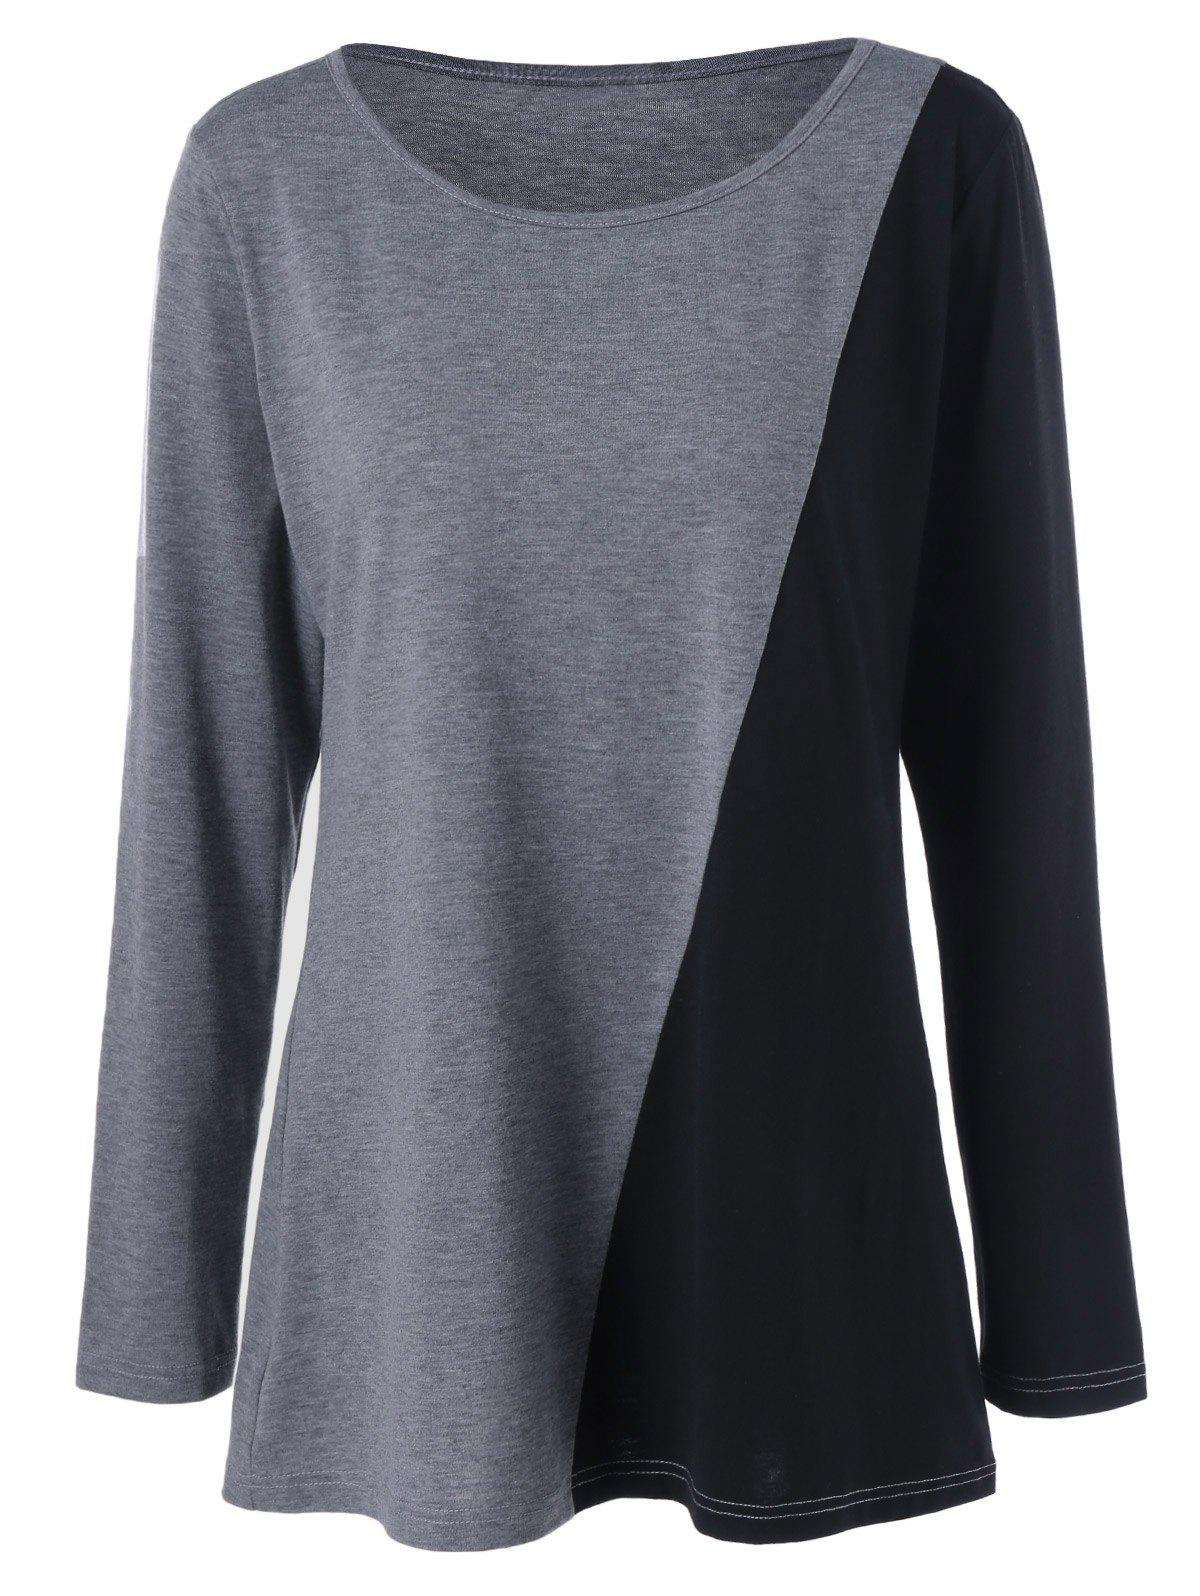 Plus Size Longline Two Tone Tee - BLACK/GREY XL